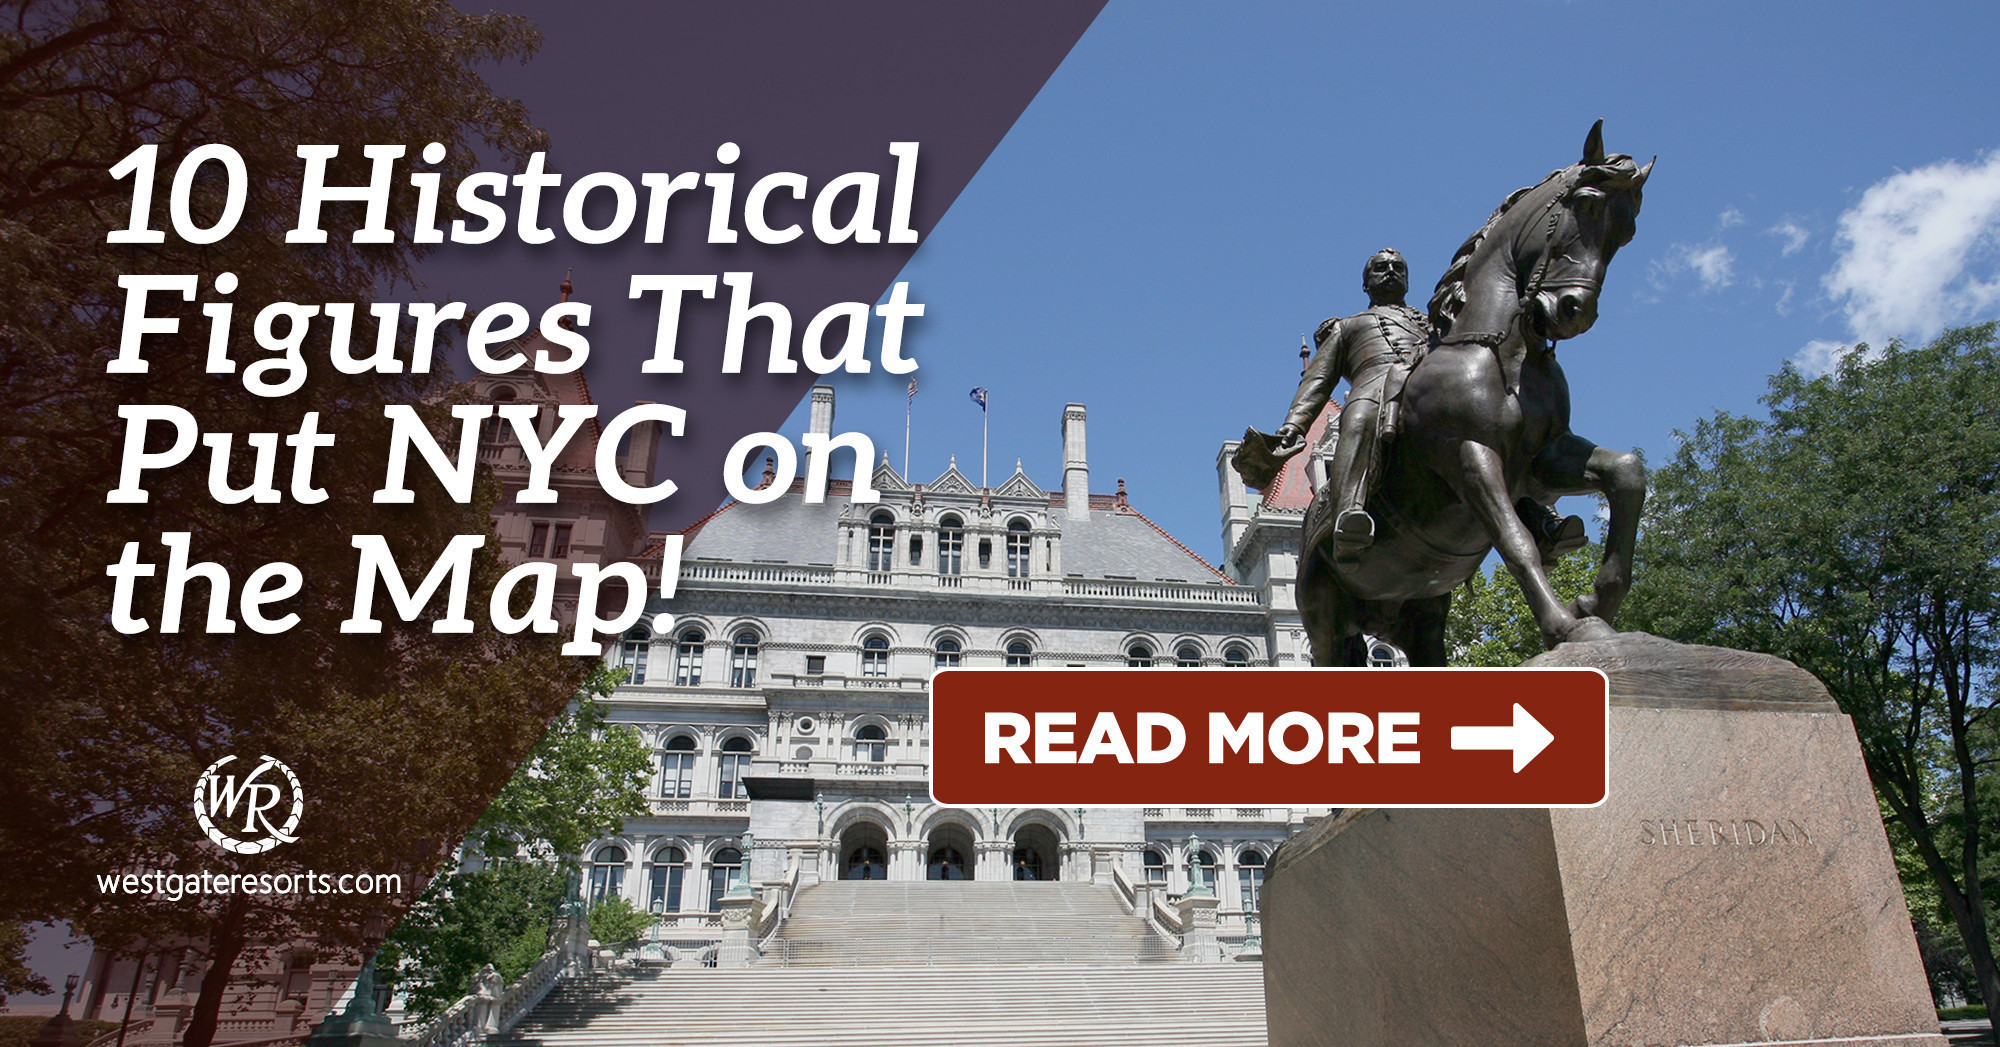 10 Historical Figures That Put NYC on the Map!